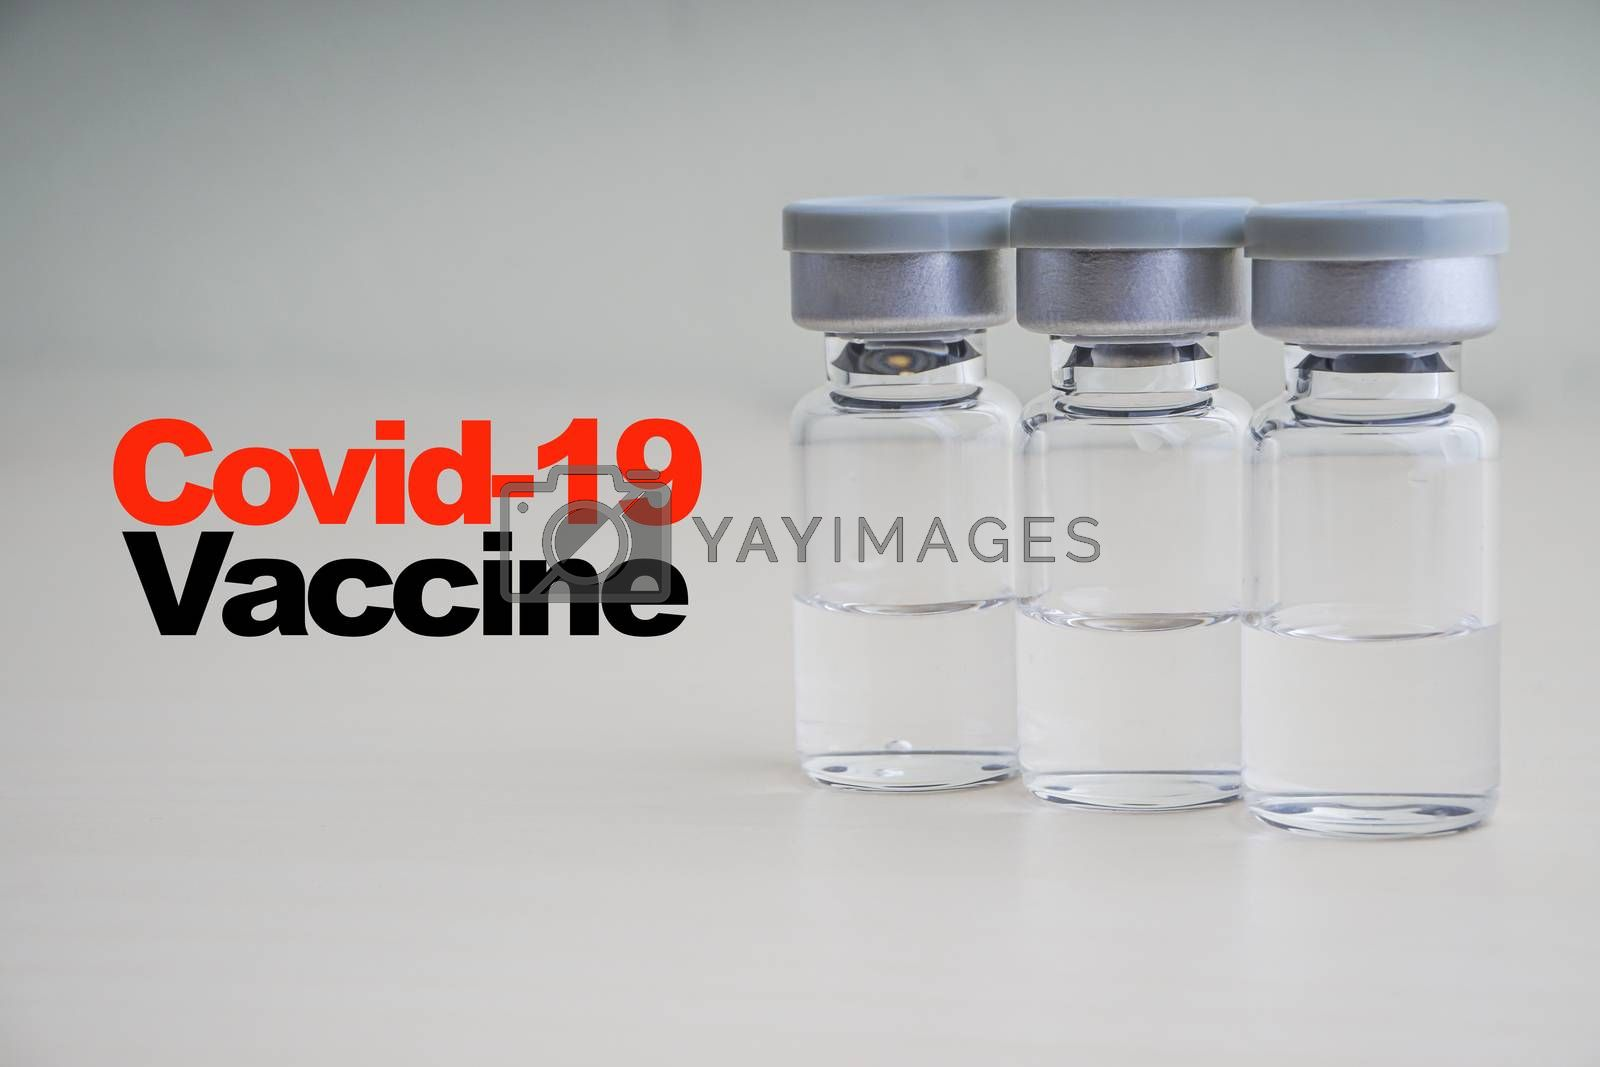 COVID -19 VACCINE text with vials on wooden background. Coronavirus or Covid-19 Vaccine concept